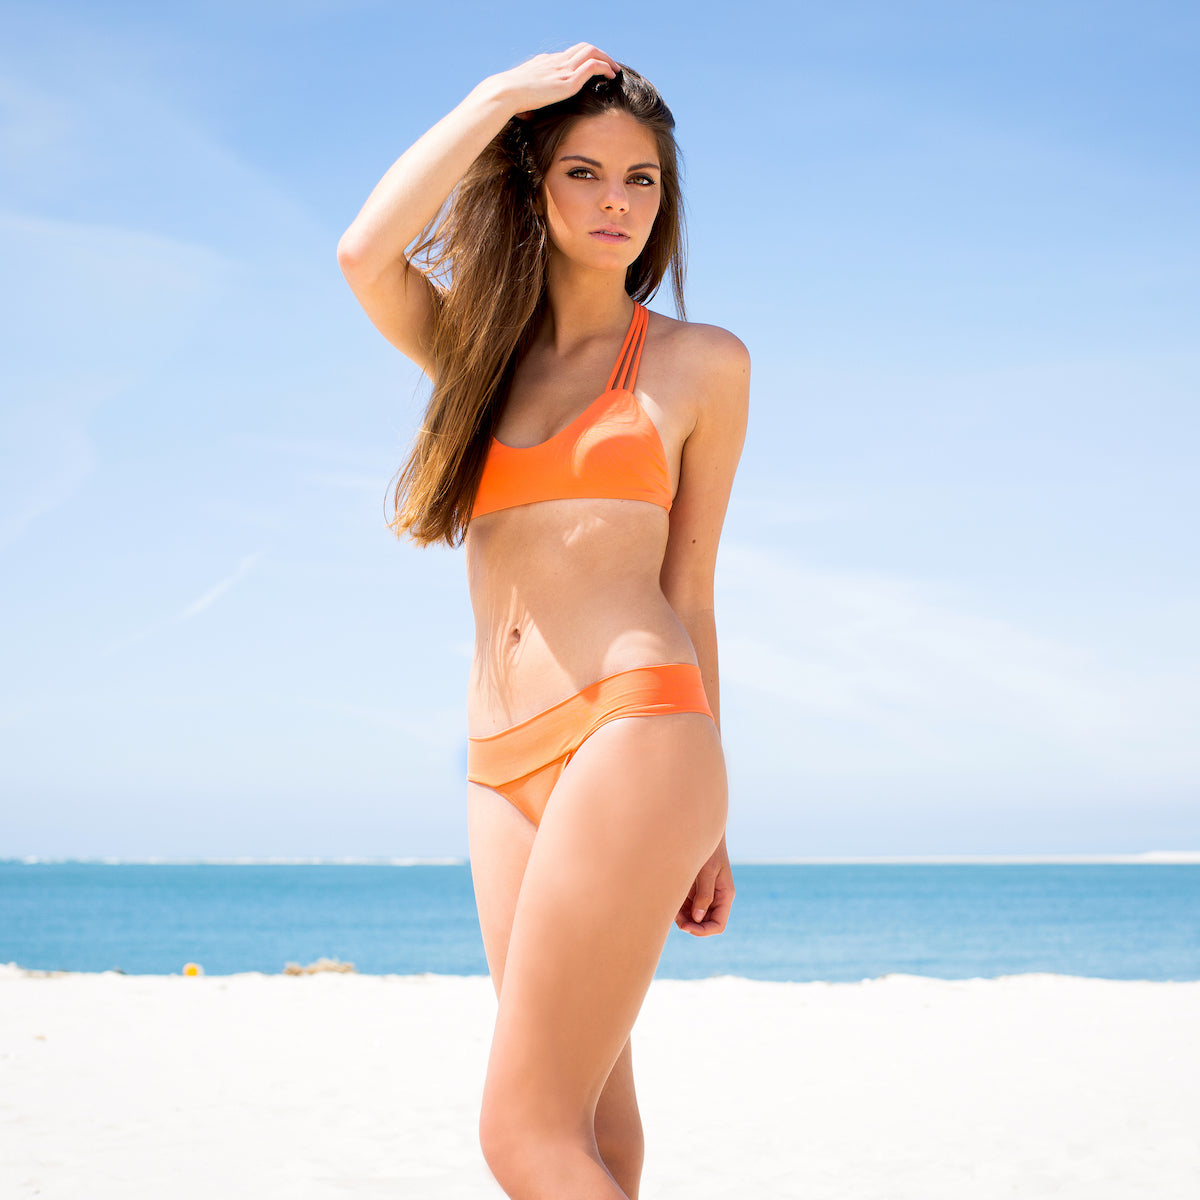 Sunshine Bikini Bottom in Nectarine by Tuhkana Swimwear